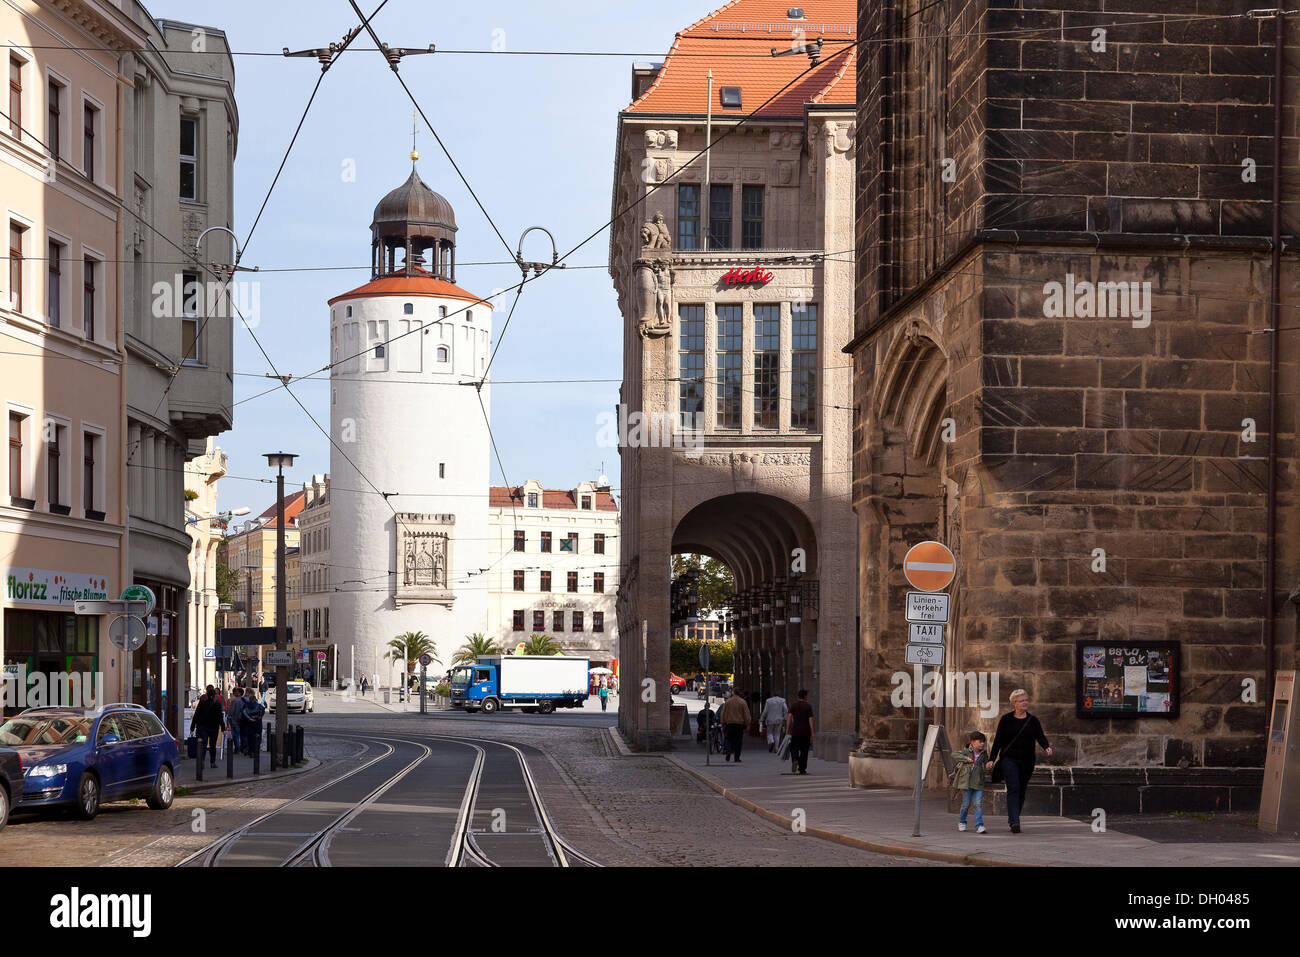 Dicker Turm tower or Frauenturm tower and an old art nouveau department store on Marienplatz square - Stock Image